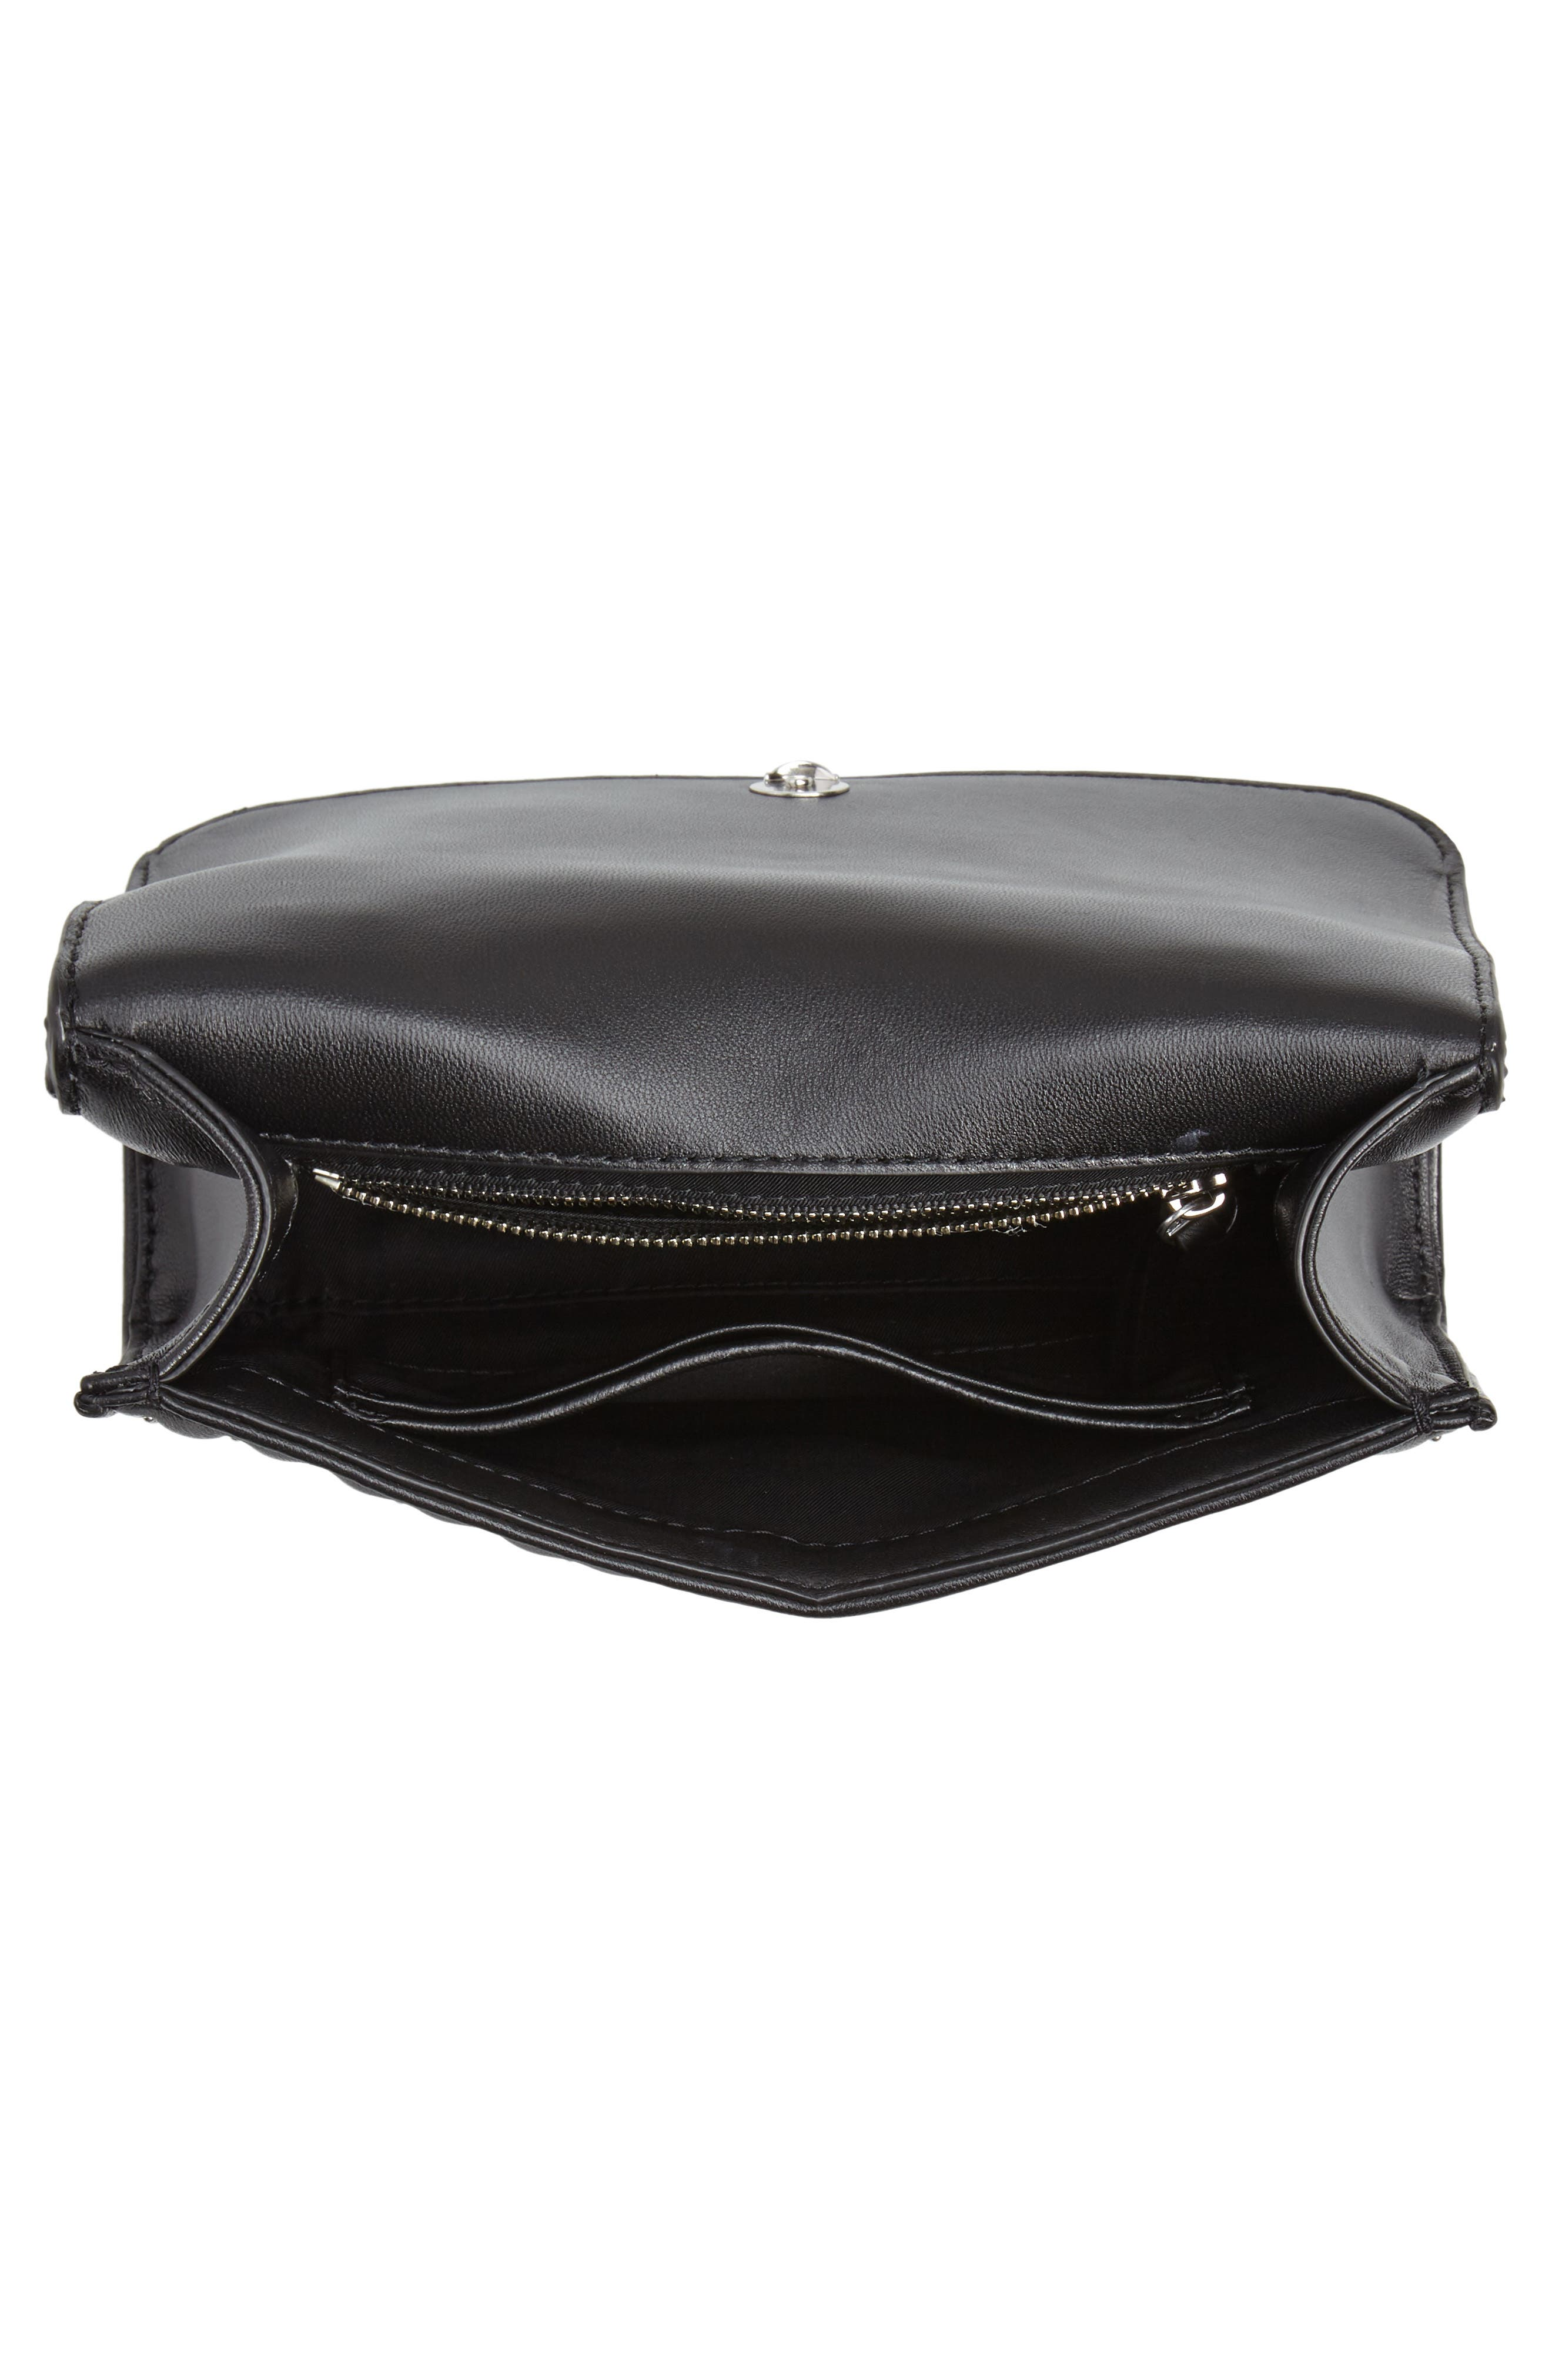 Small Fleming Studded Leather Convertible Shoulder Bag,                             Alternate thumbnail 4, color,                             BLACK / SILVER